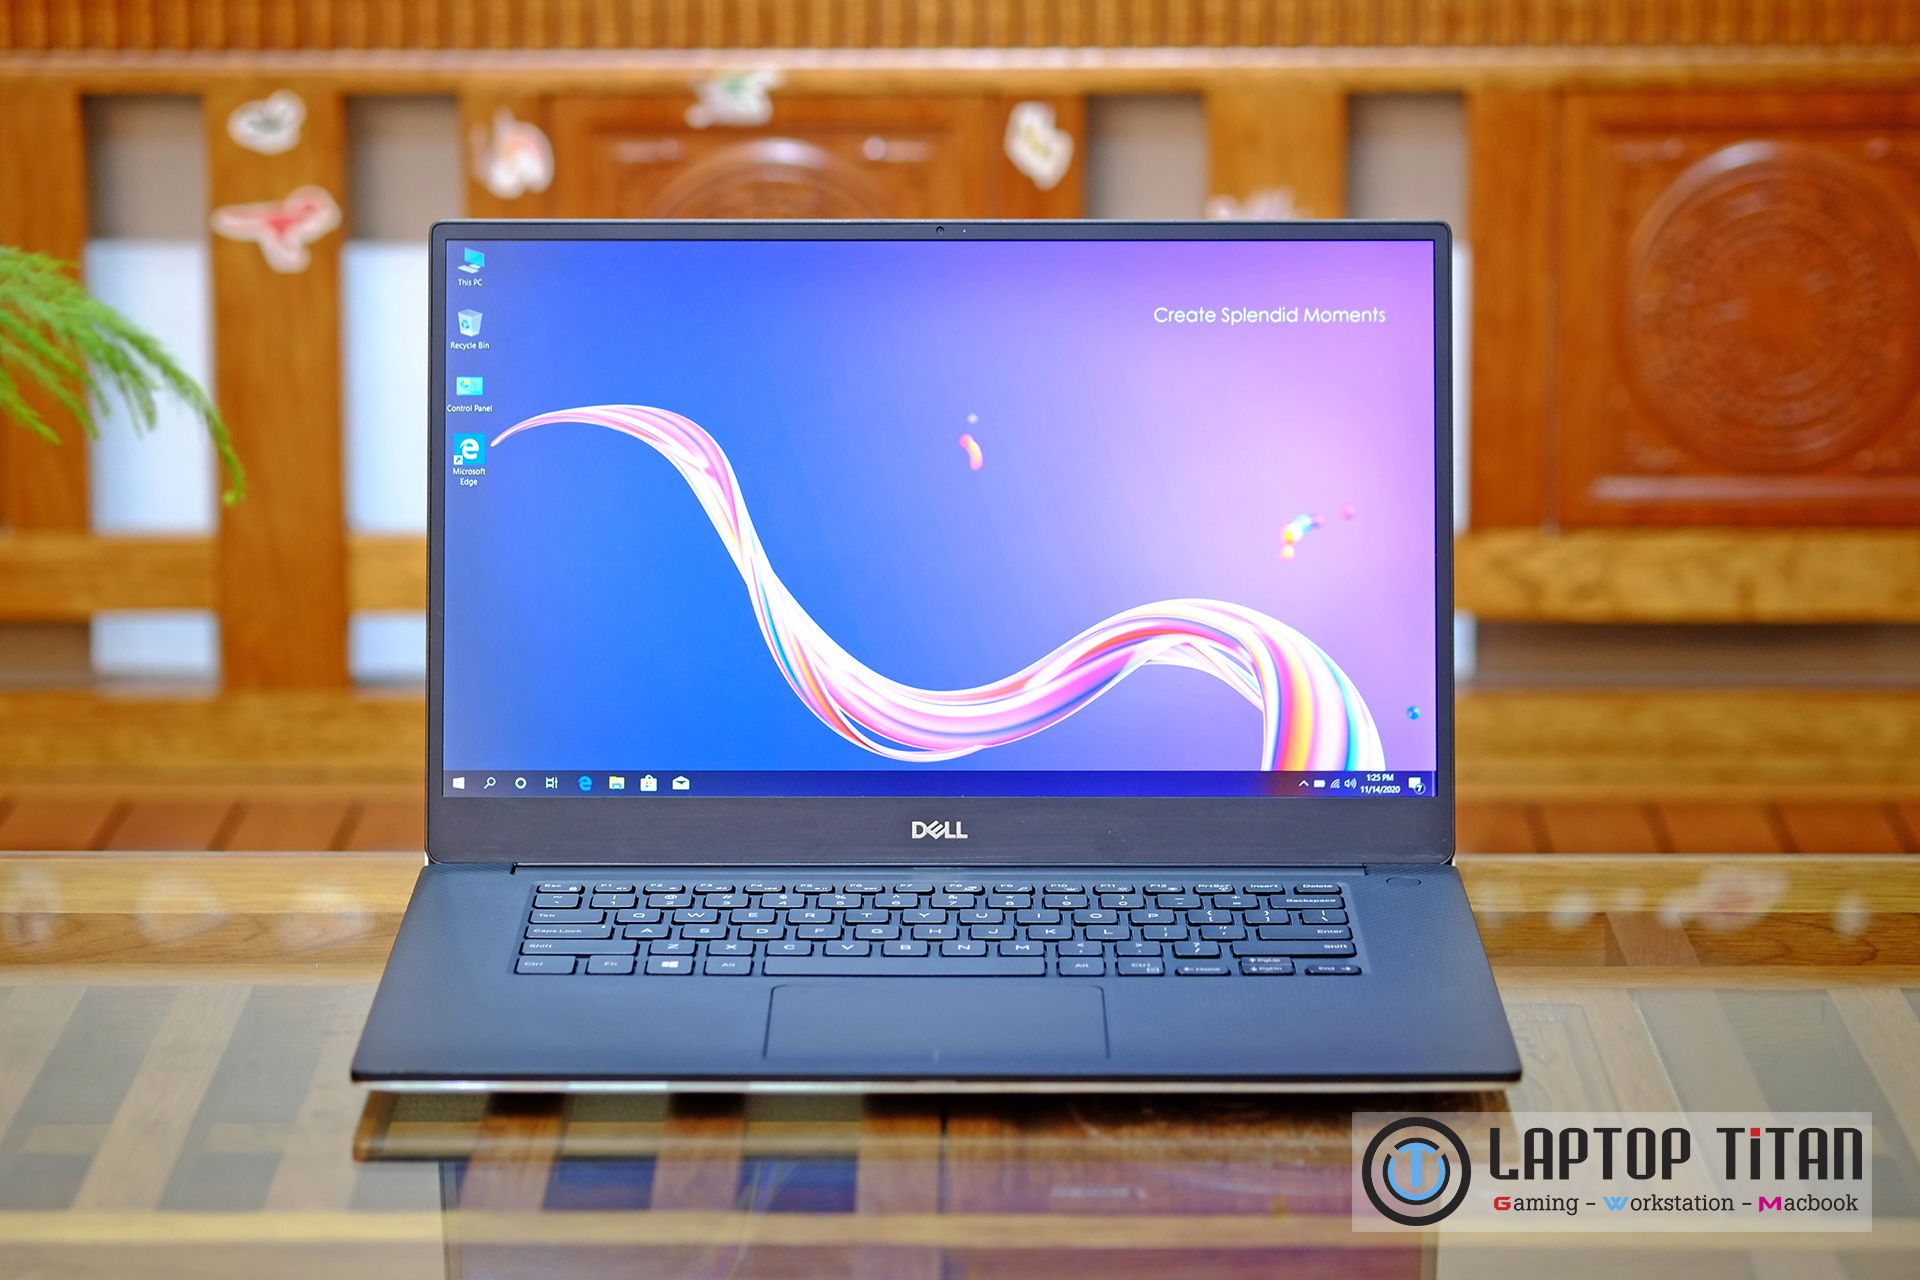 Dell Xps 15 7590 003